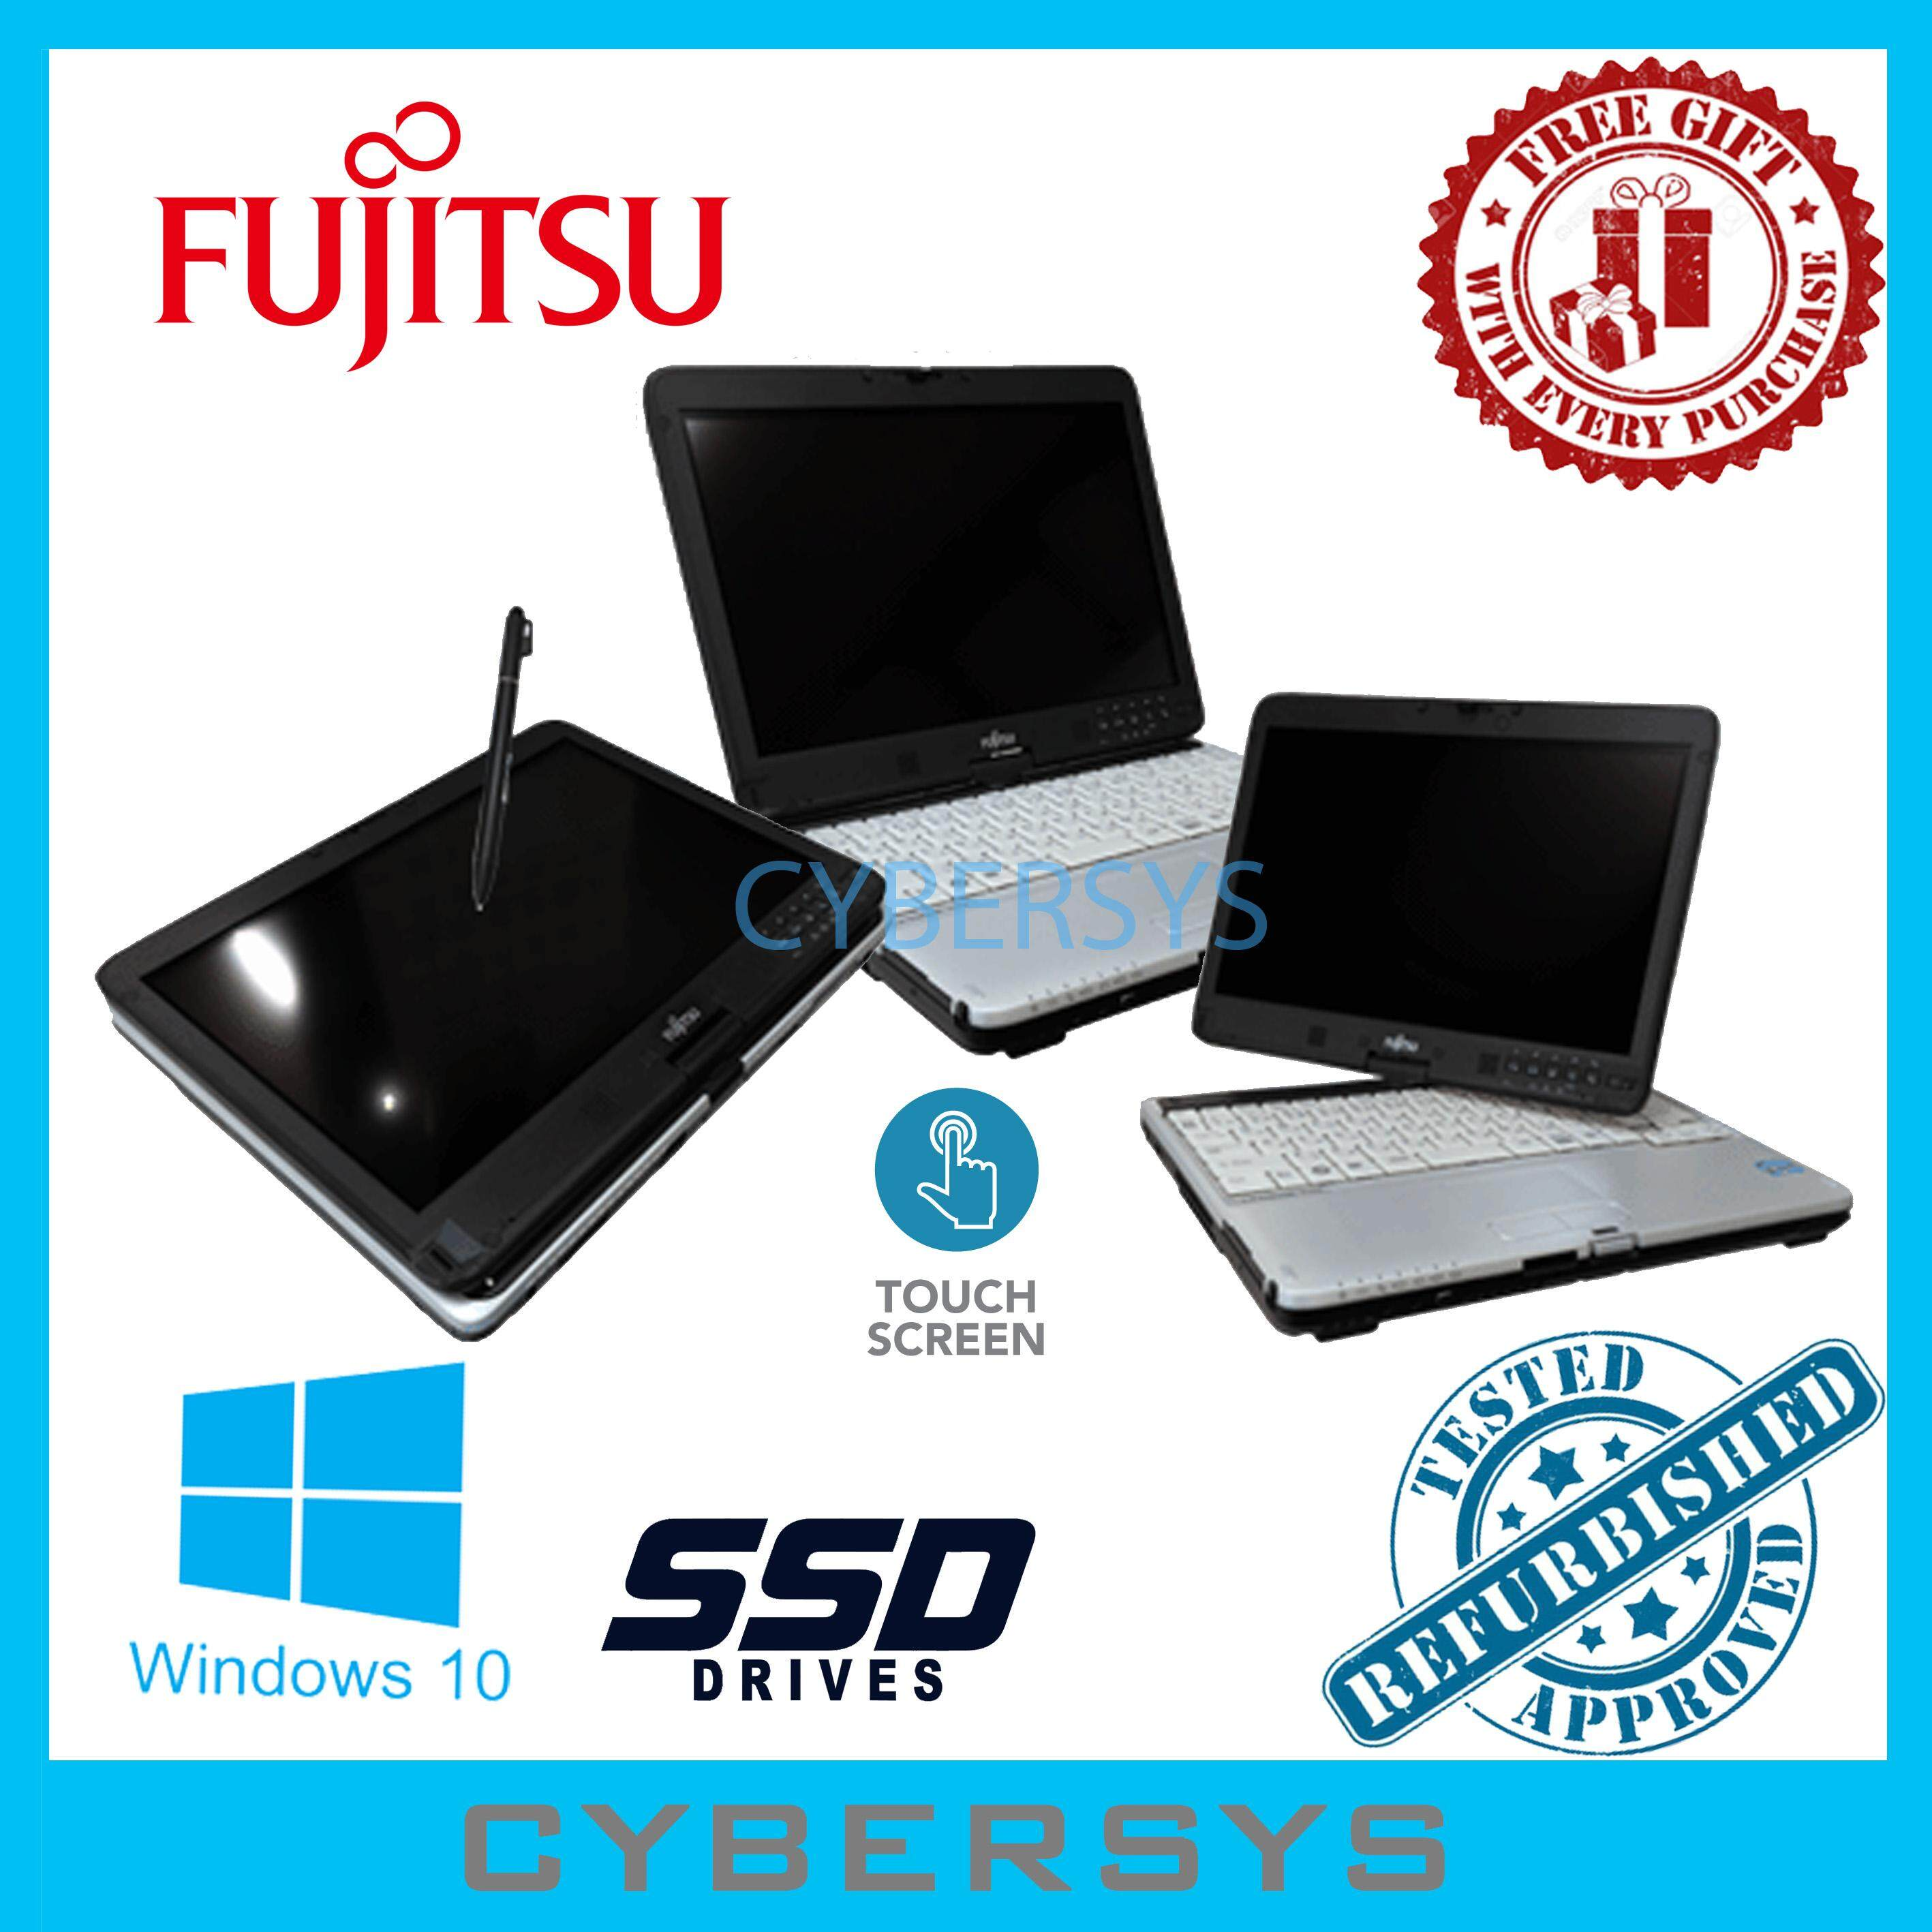 Fujitsu Lifebook Intel(R) Core i5 2GB 30GB SSD Touch Screen Laptop Notebook (Refurbished) Malaysia